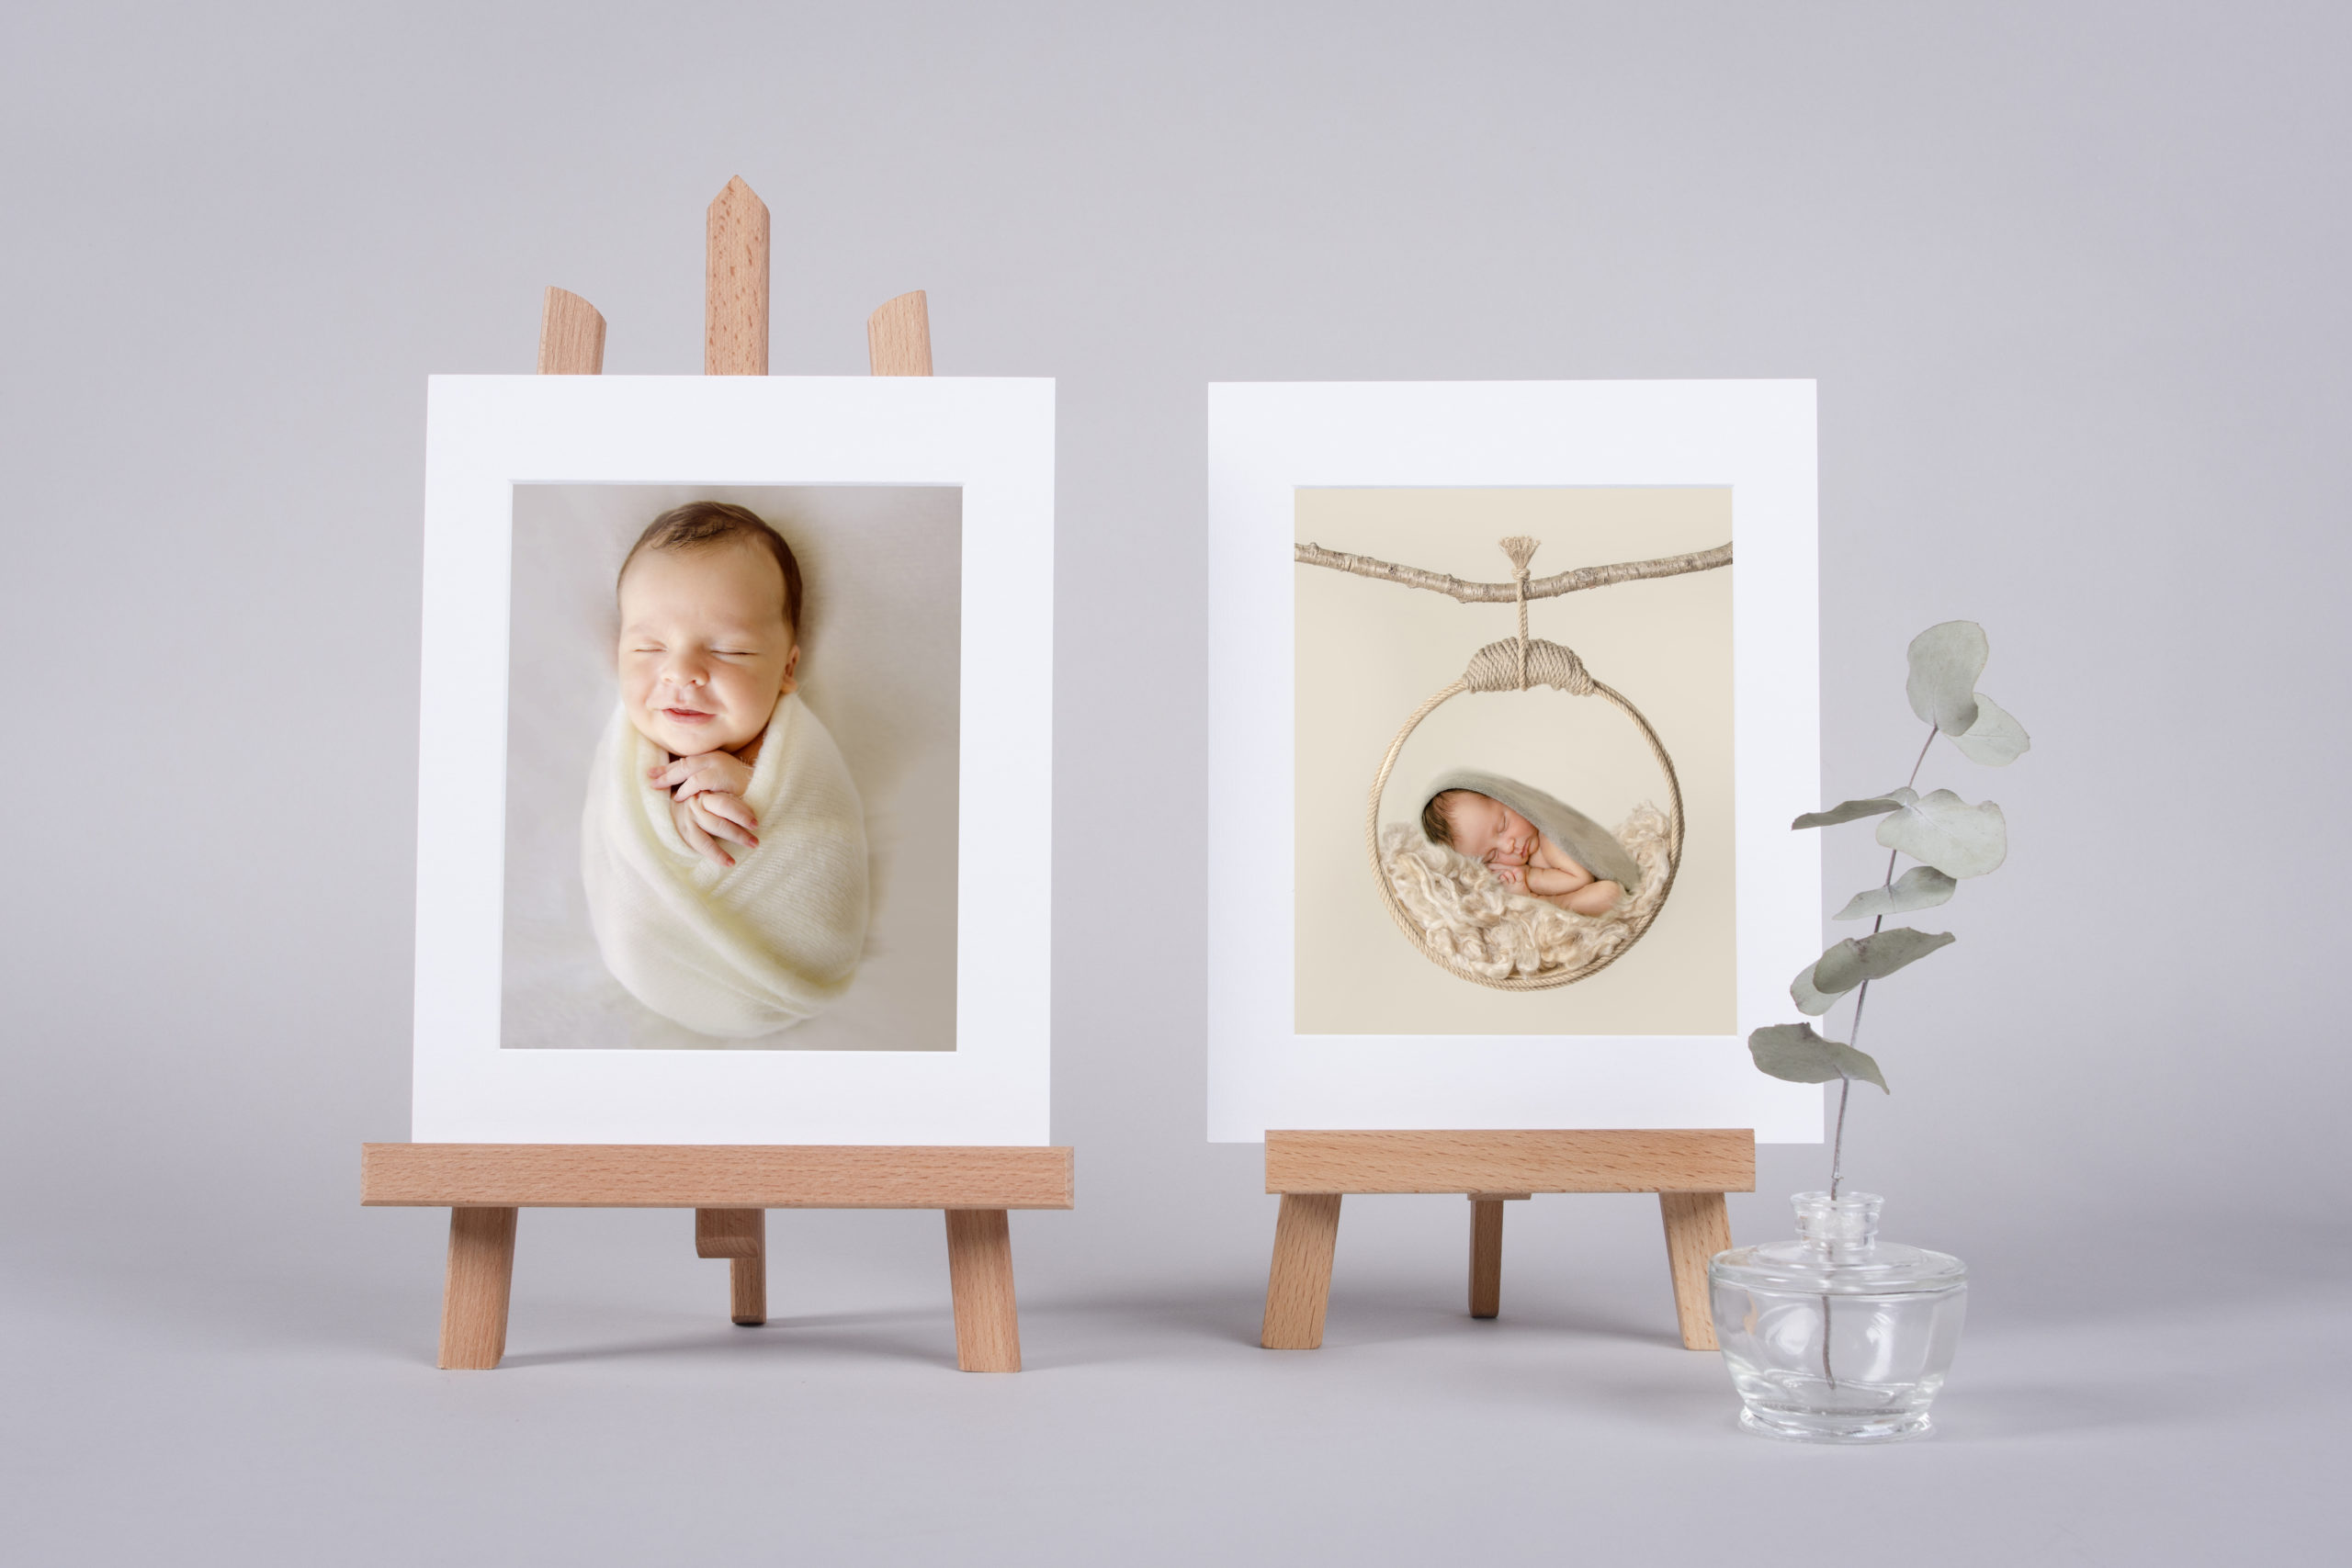 Two Prints on a white background Luxury Printing Products art Prints family portrait child portrait print professional quality prints folio box storage ideas handmade matted paper prints in a photography Studio in Wimbledon South West London